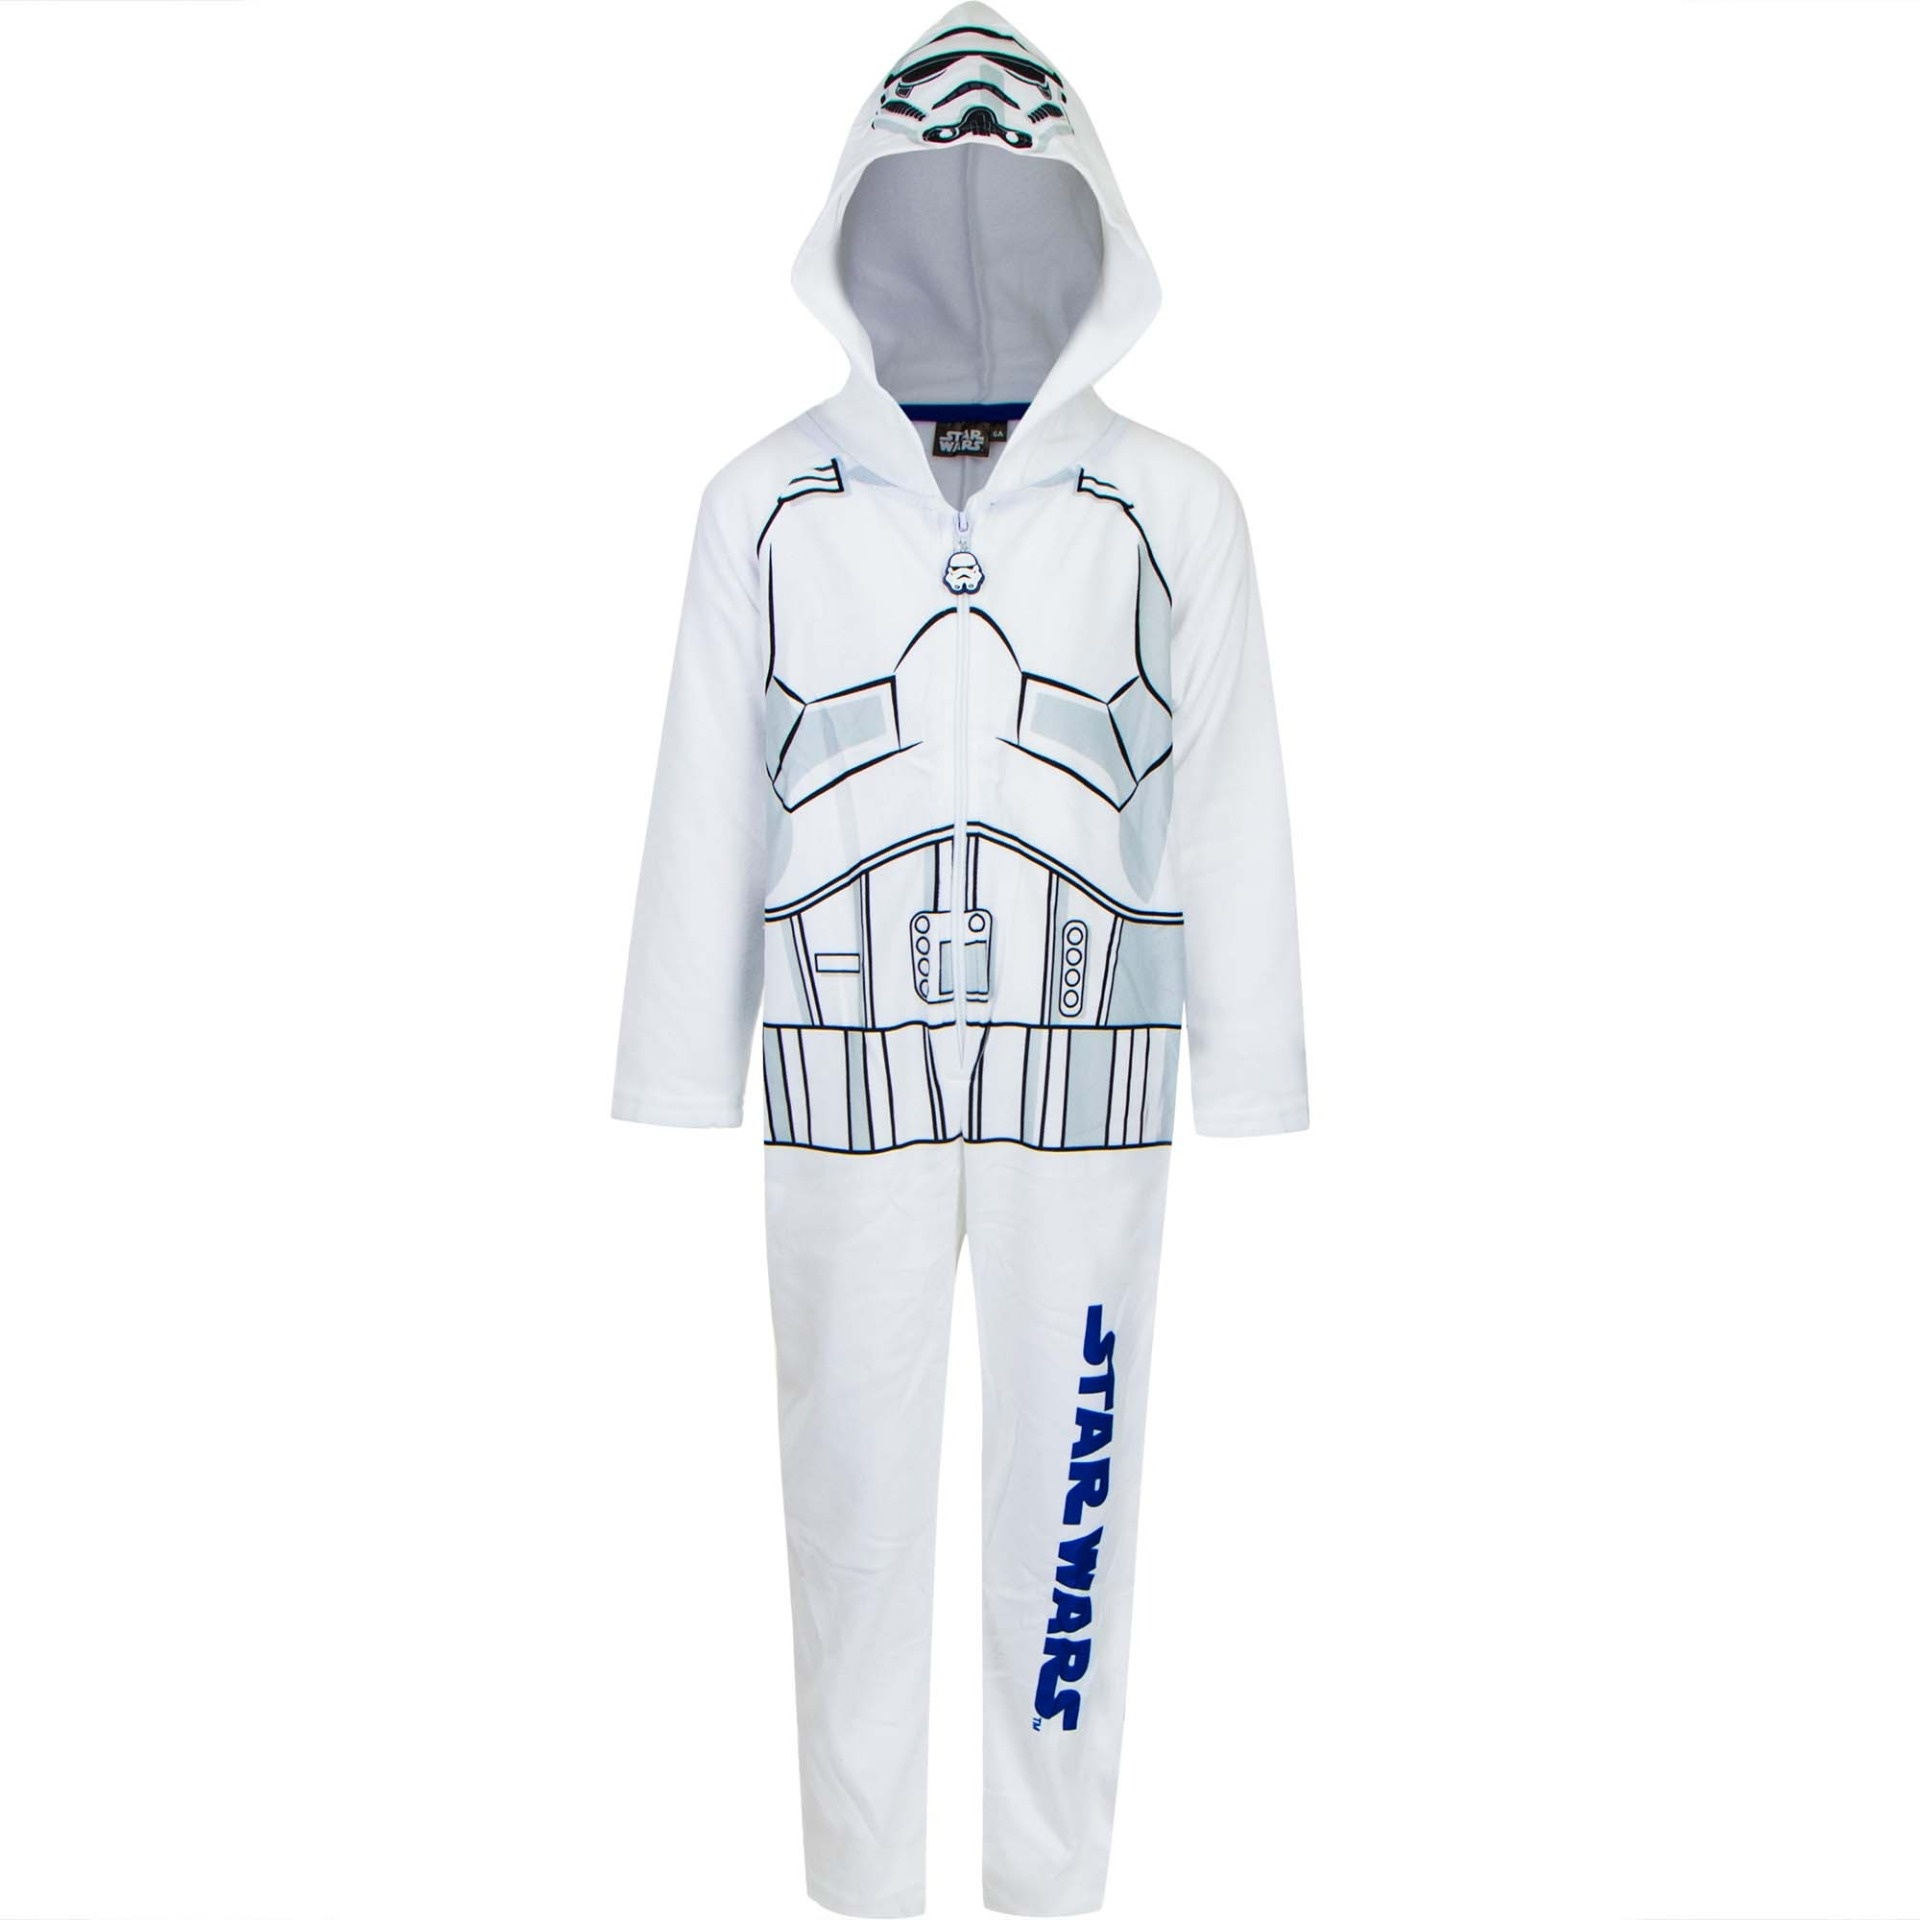 Disney jongens Fleece onesie Star Wars wit 9008